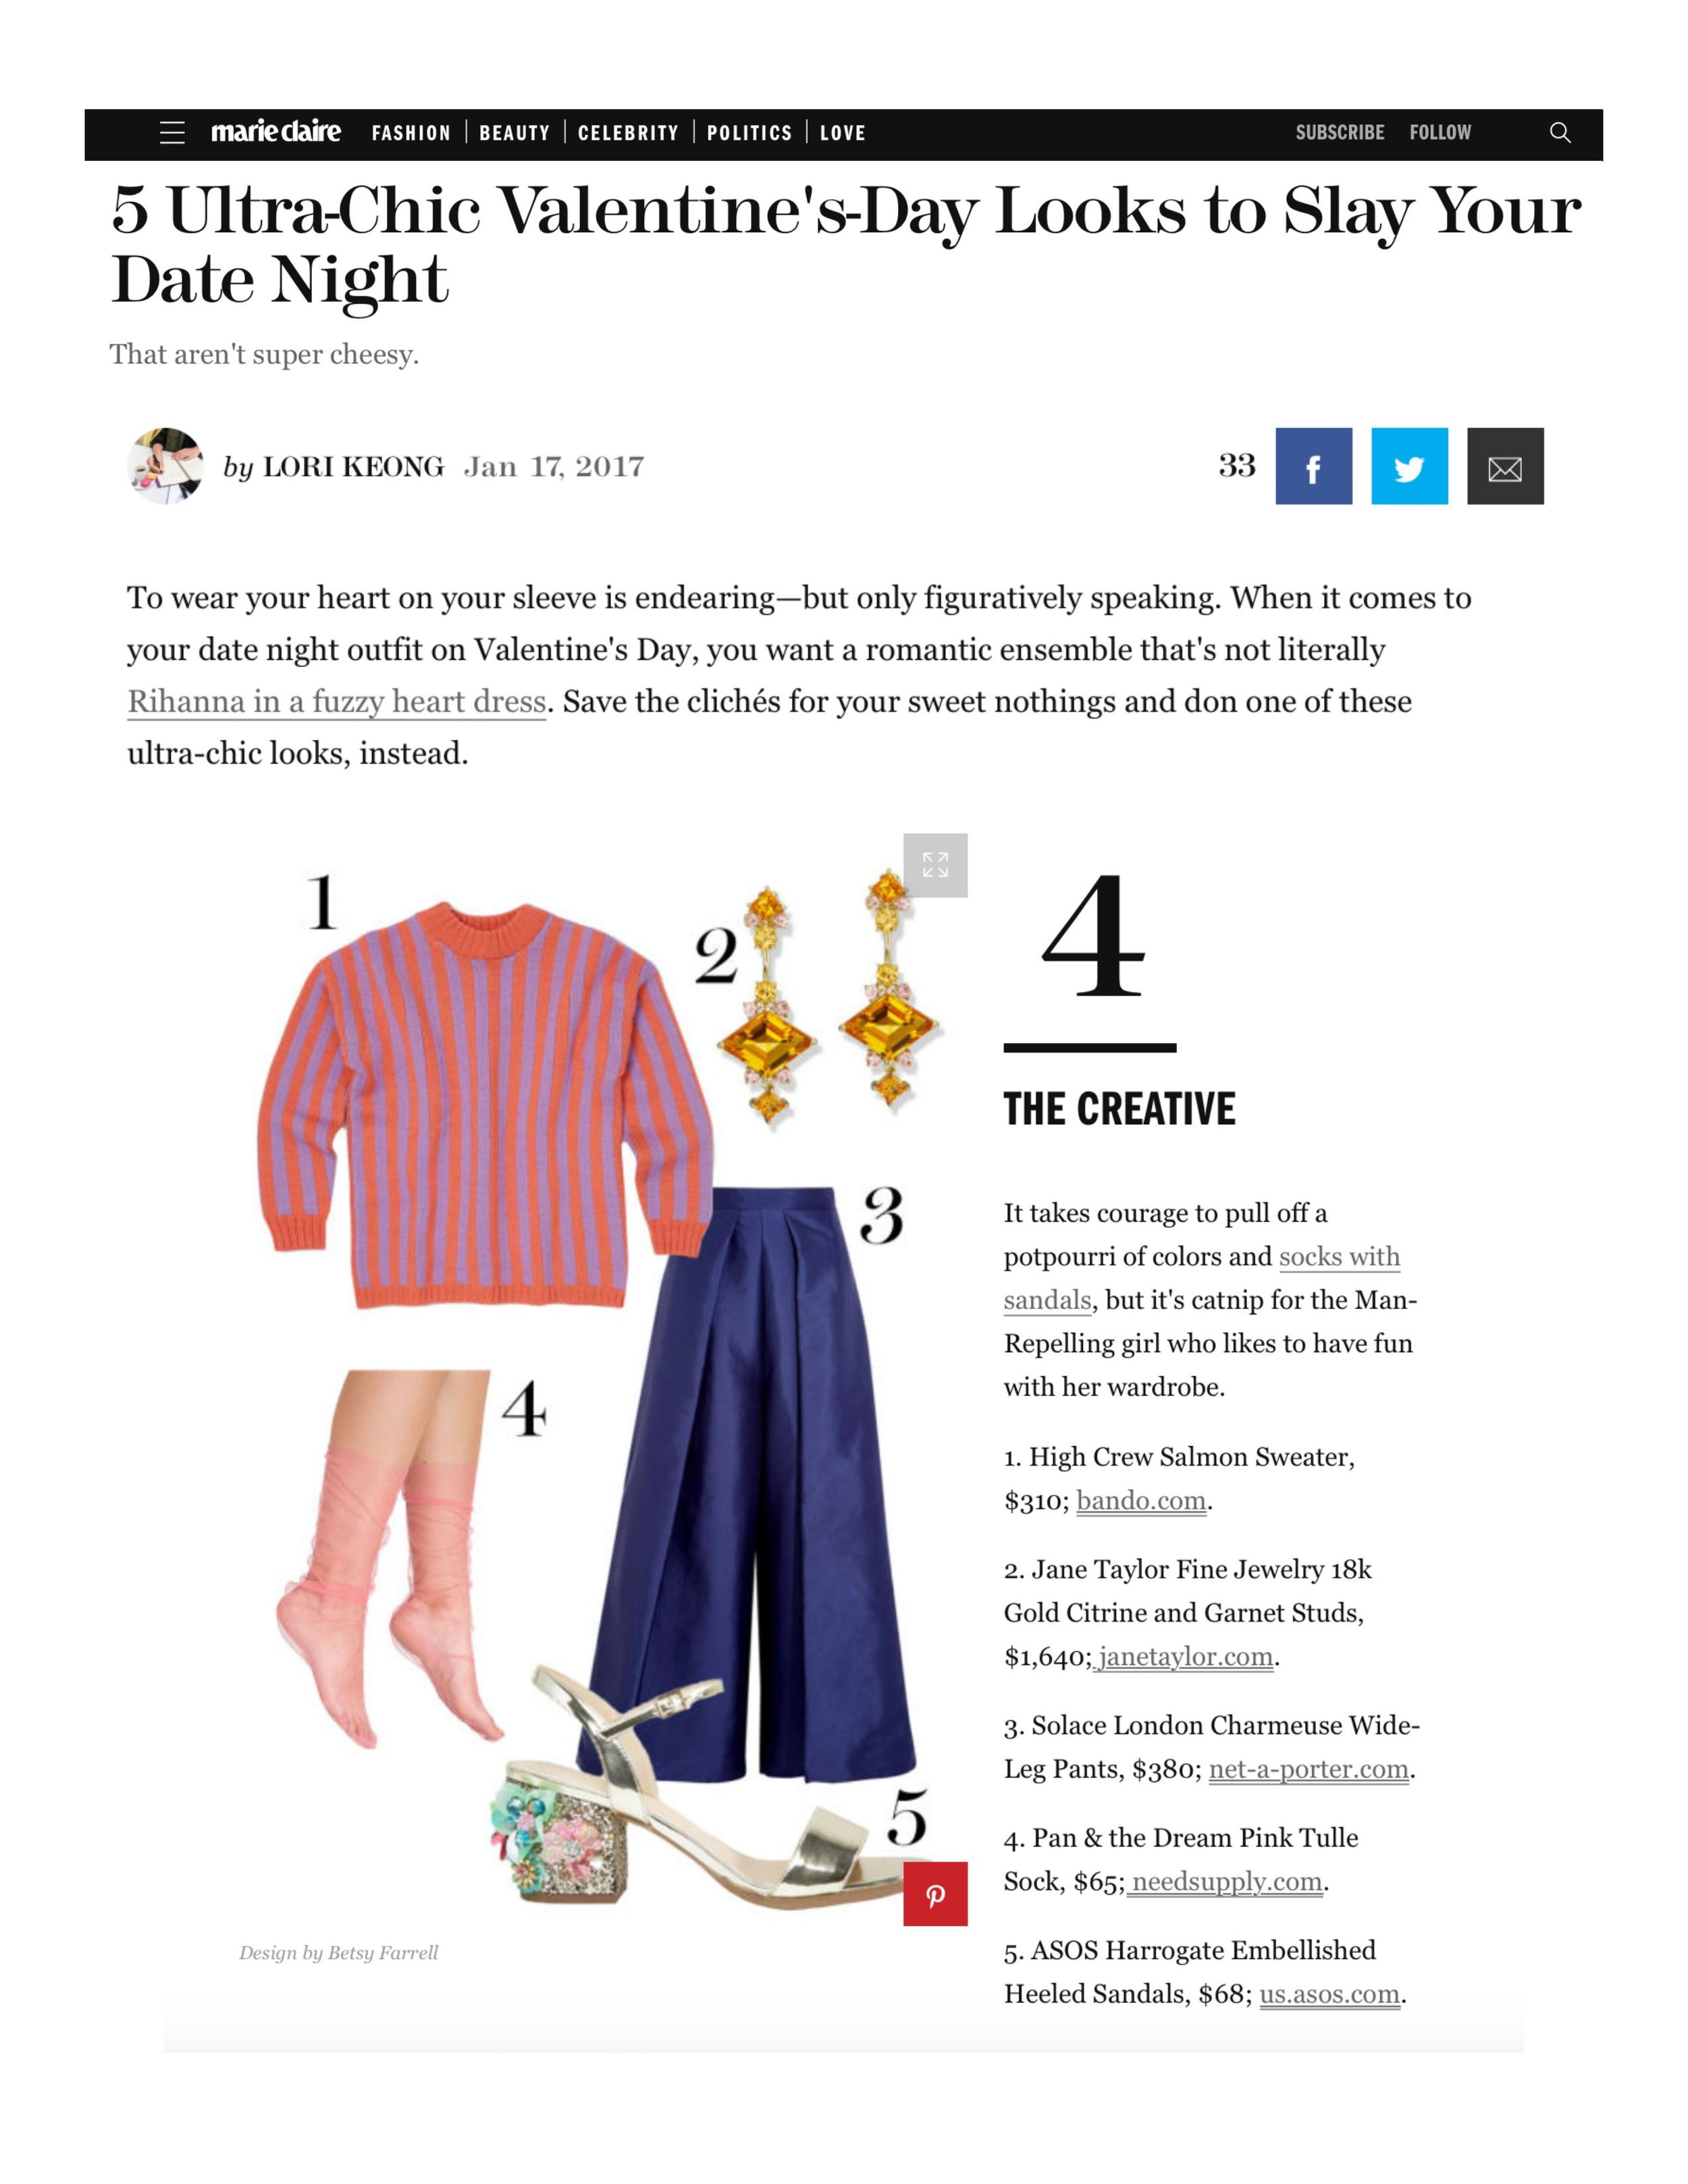 Jane Taylor Mini Frida studs and jackets with citrine on MarieClaire.com